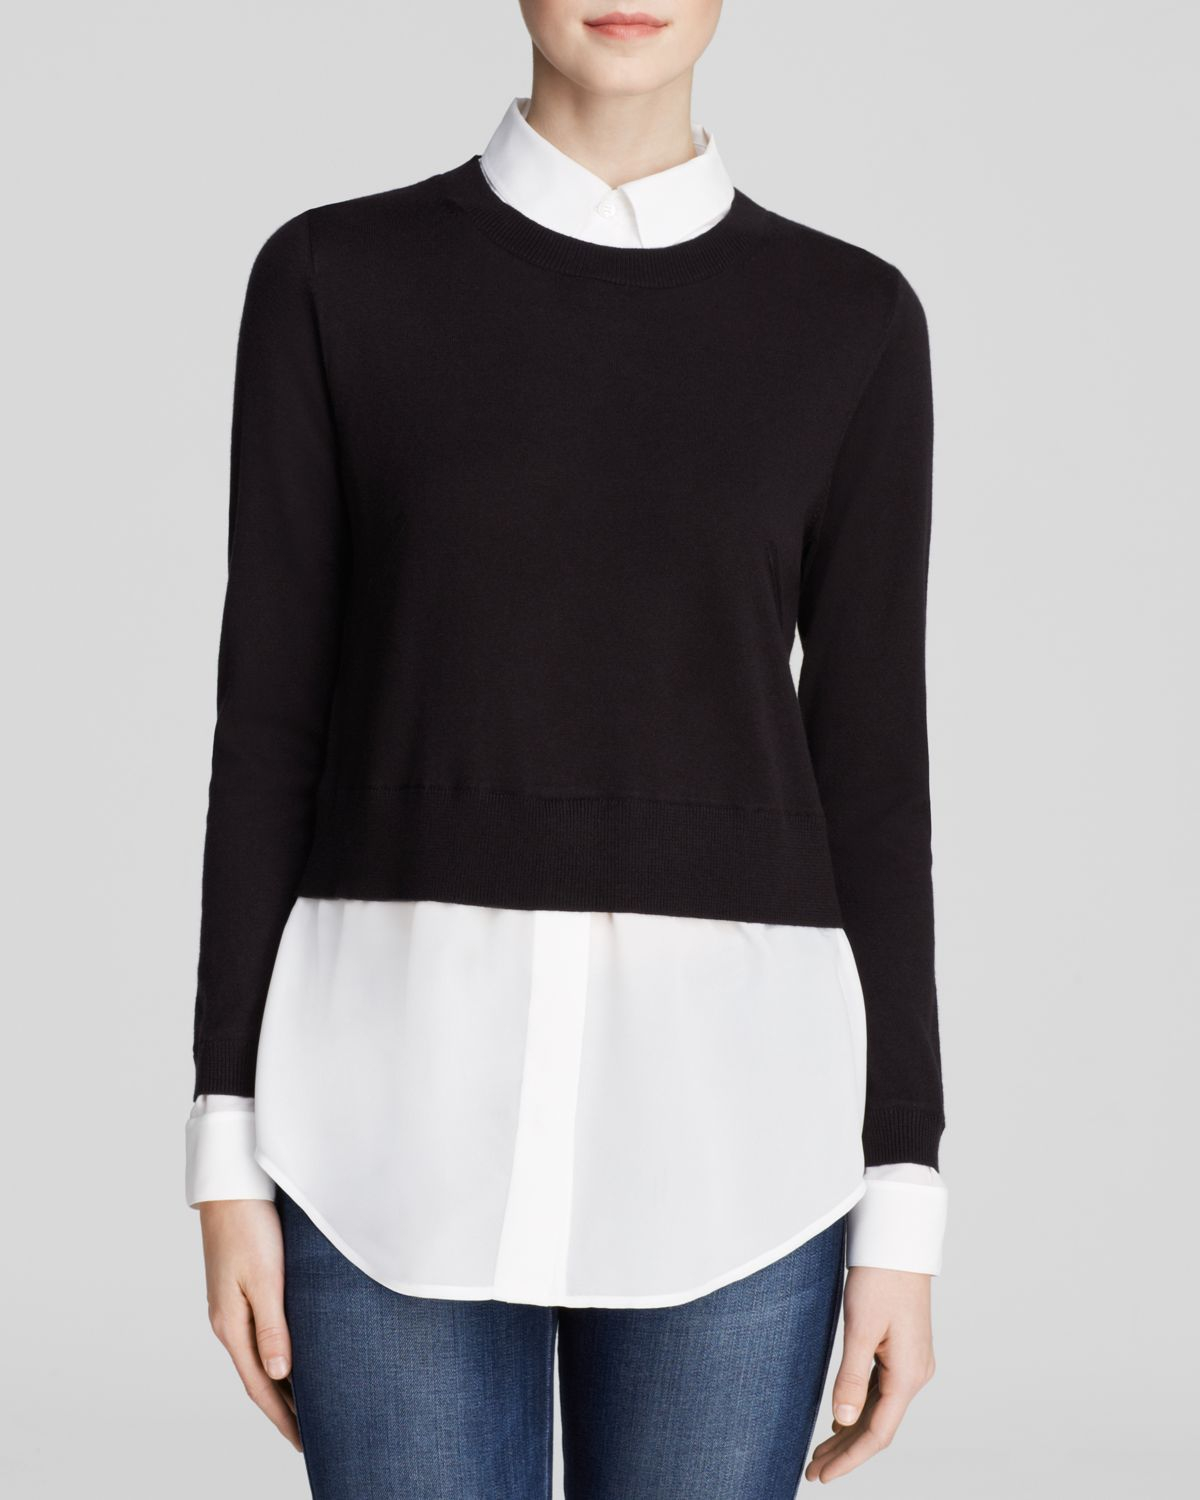 Dylan gray sweater shirt combo in black lyst for Sweater and dress shirt combo